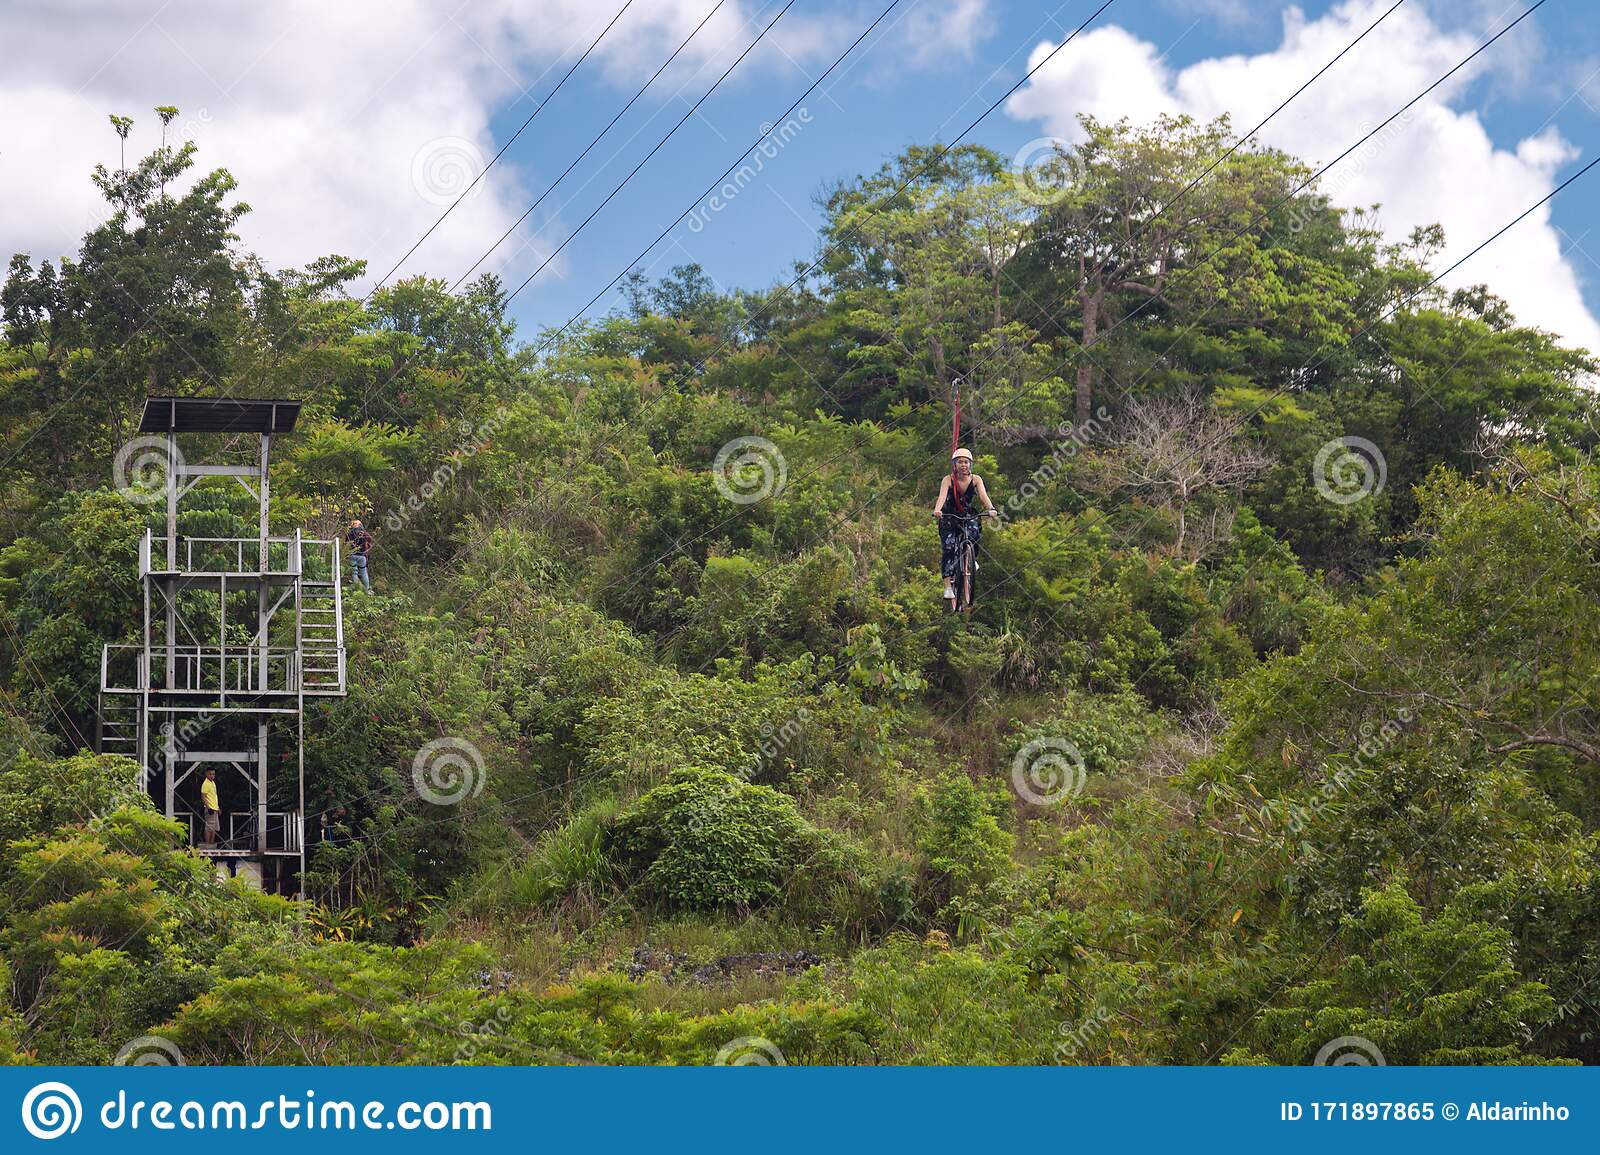 Woman Riding A Bike On Zip Line In The Jungle Forest Editorial Image Image Of Freedom Dangerous 171897865